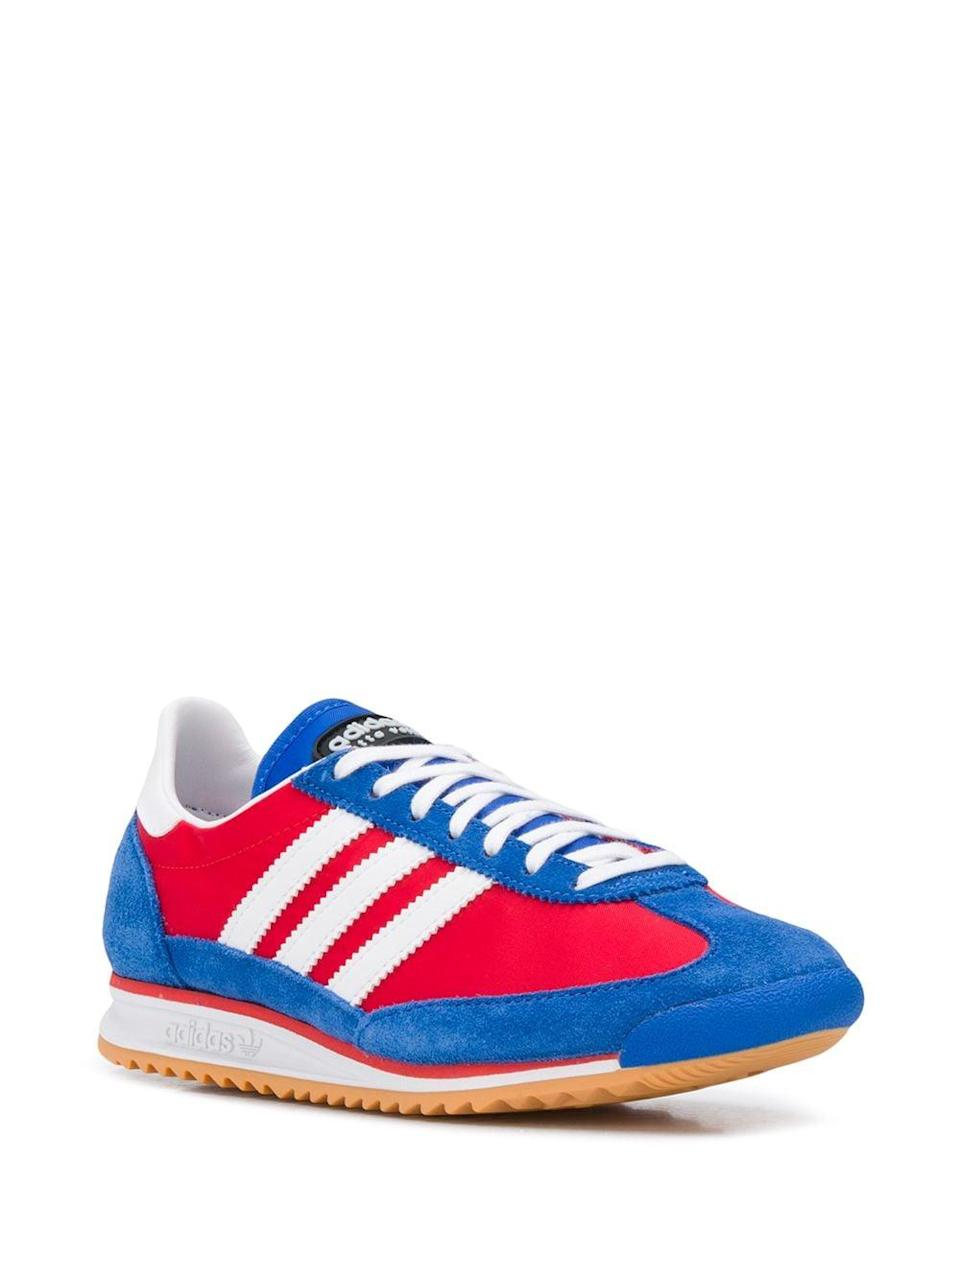 """<p><span>Adidas x Lotta Volkova Sneakers</span> ($120, originally $160)</p> <p>""""I'm obsessed with these sneakers! They are so comfortable and add the perfect pop of color to my usual leggings or sweats I'm wearing these days - and of course they go great with jeans too!"""" - Lisa Sugar, president and founder, POPSUGAR</p>"""